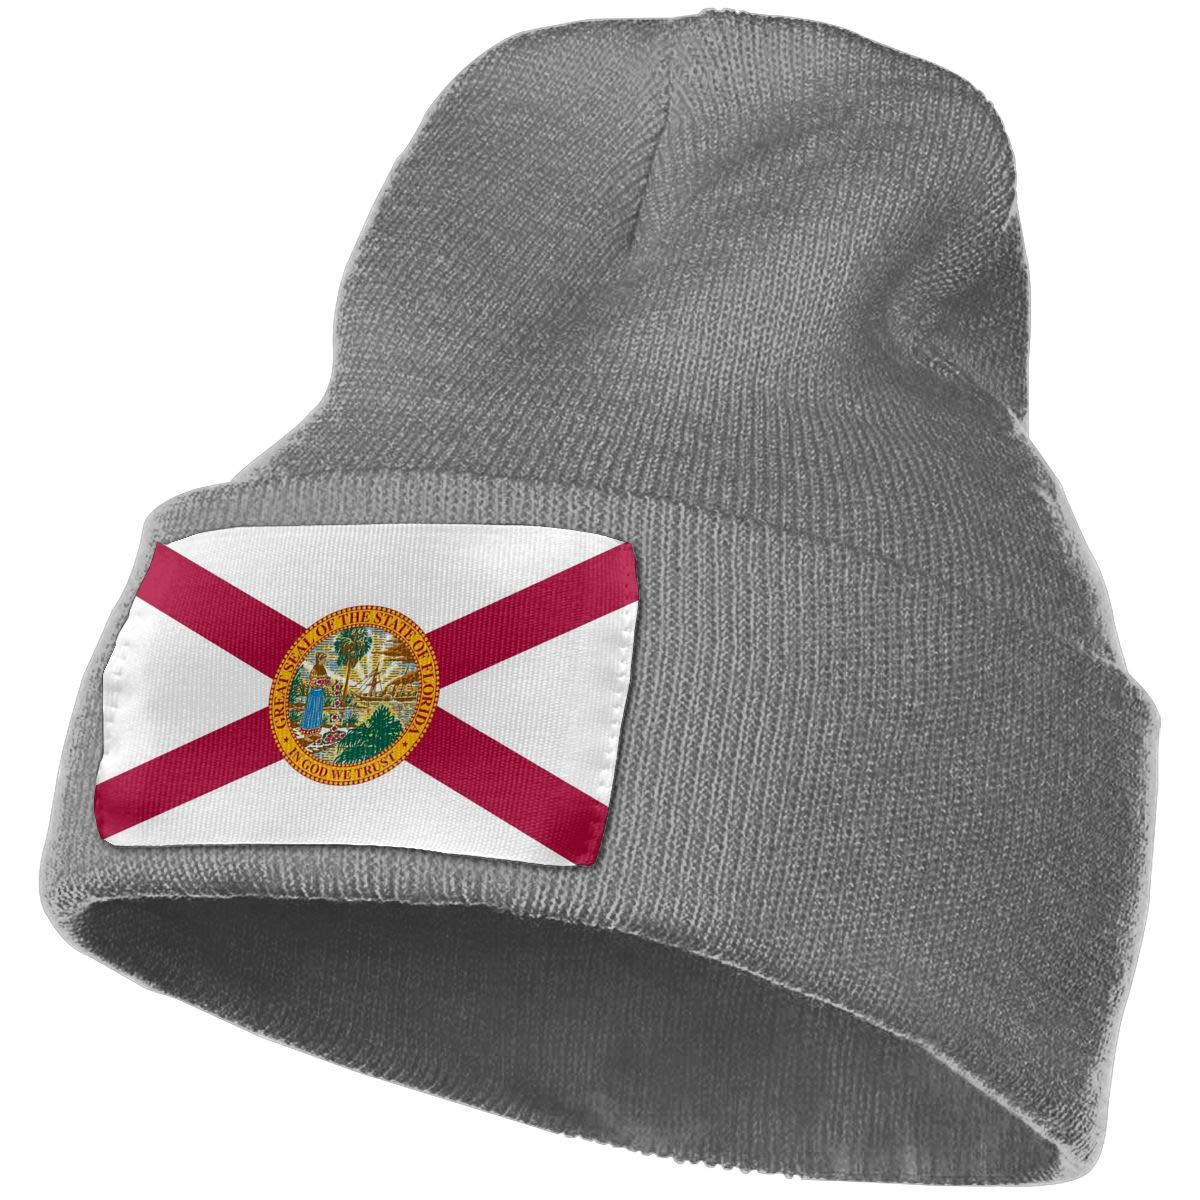 TAOMAP89 Florida State Map Flag Women and Men Skull Caps Winter Warm Stretchy Knitting Beanie Hats